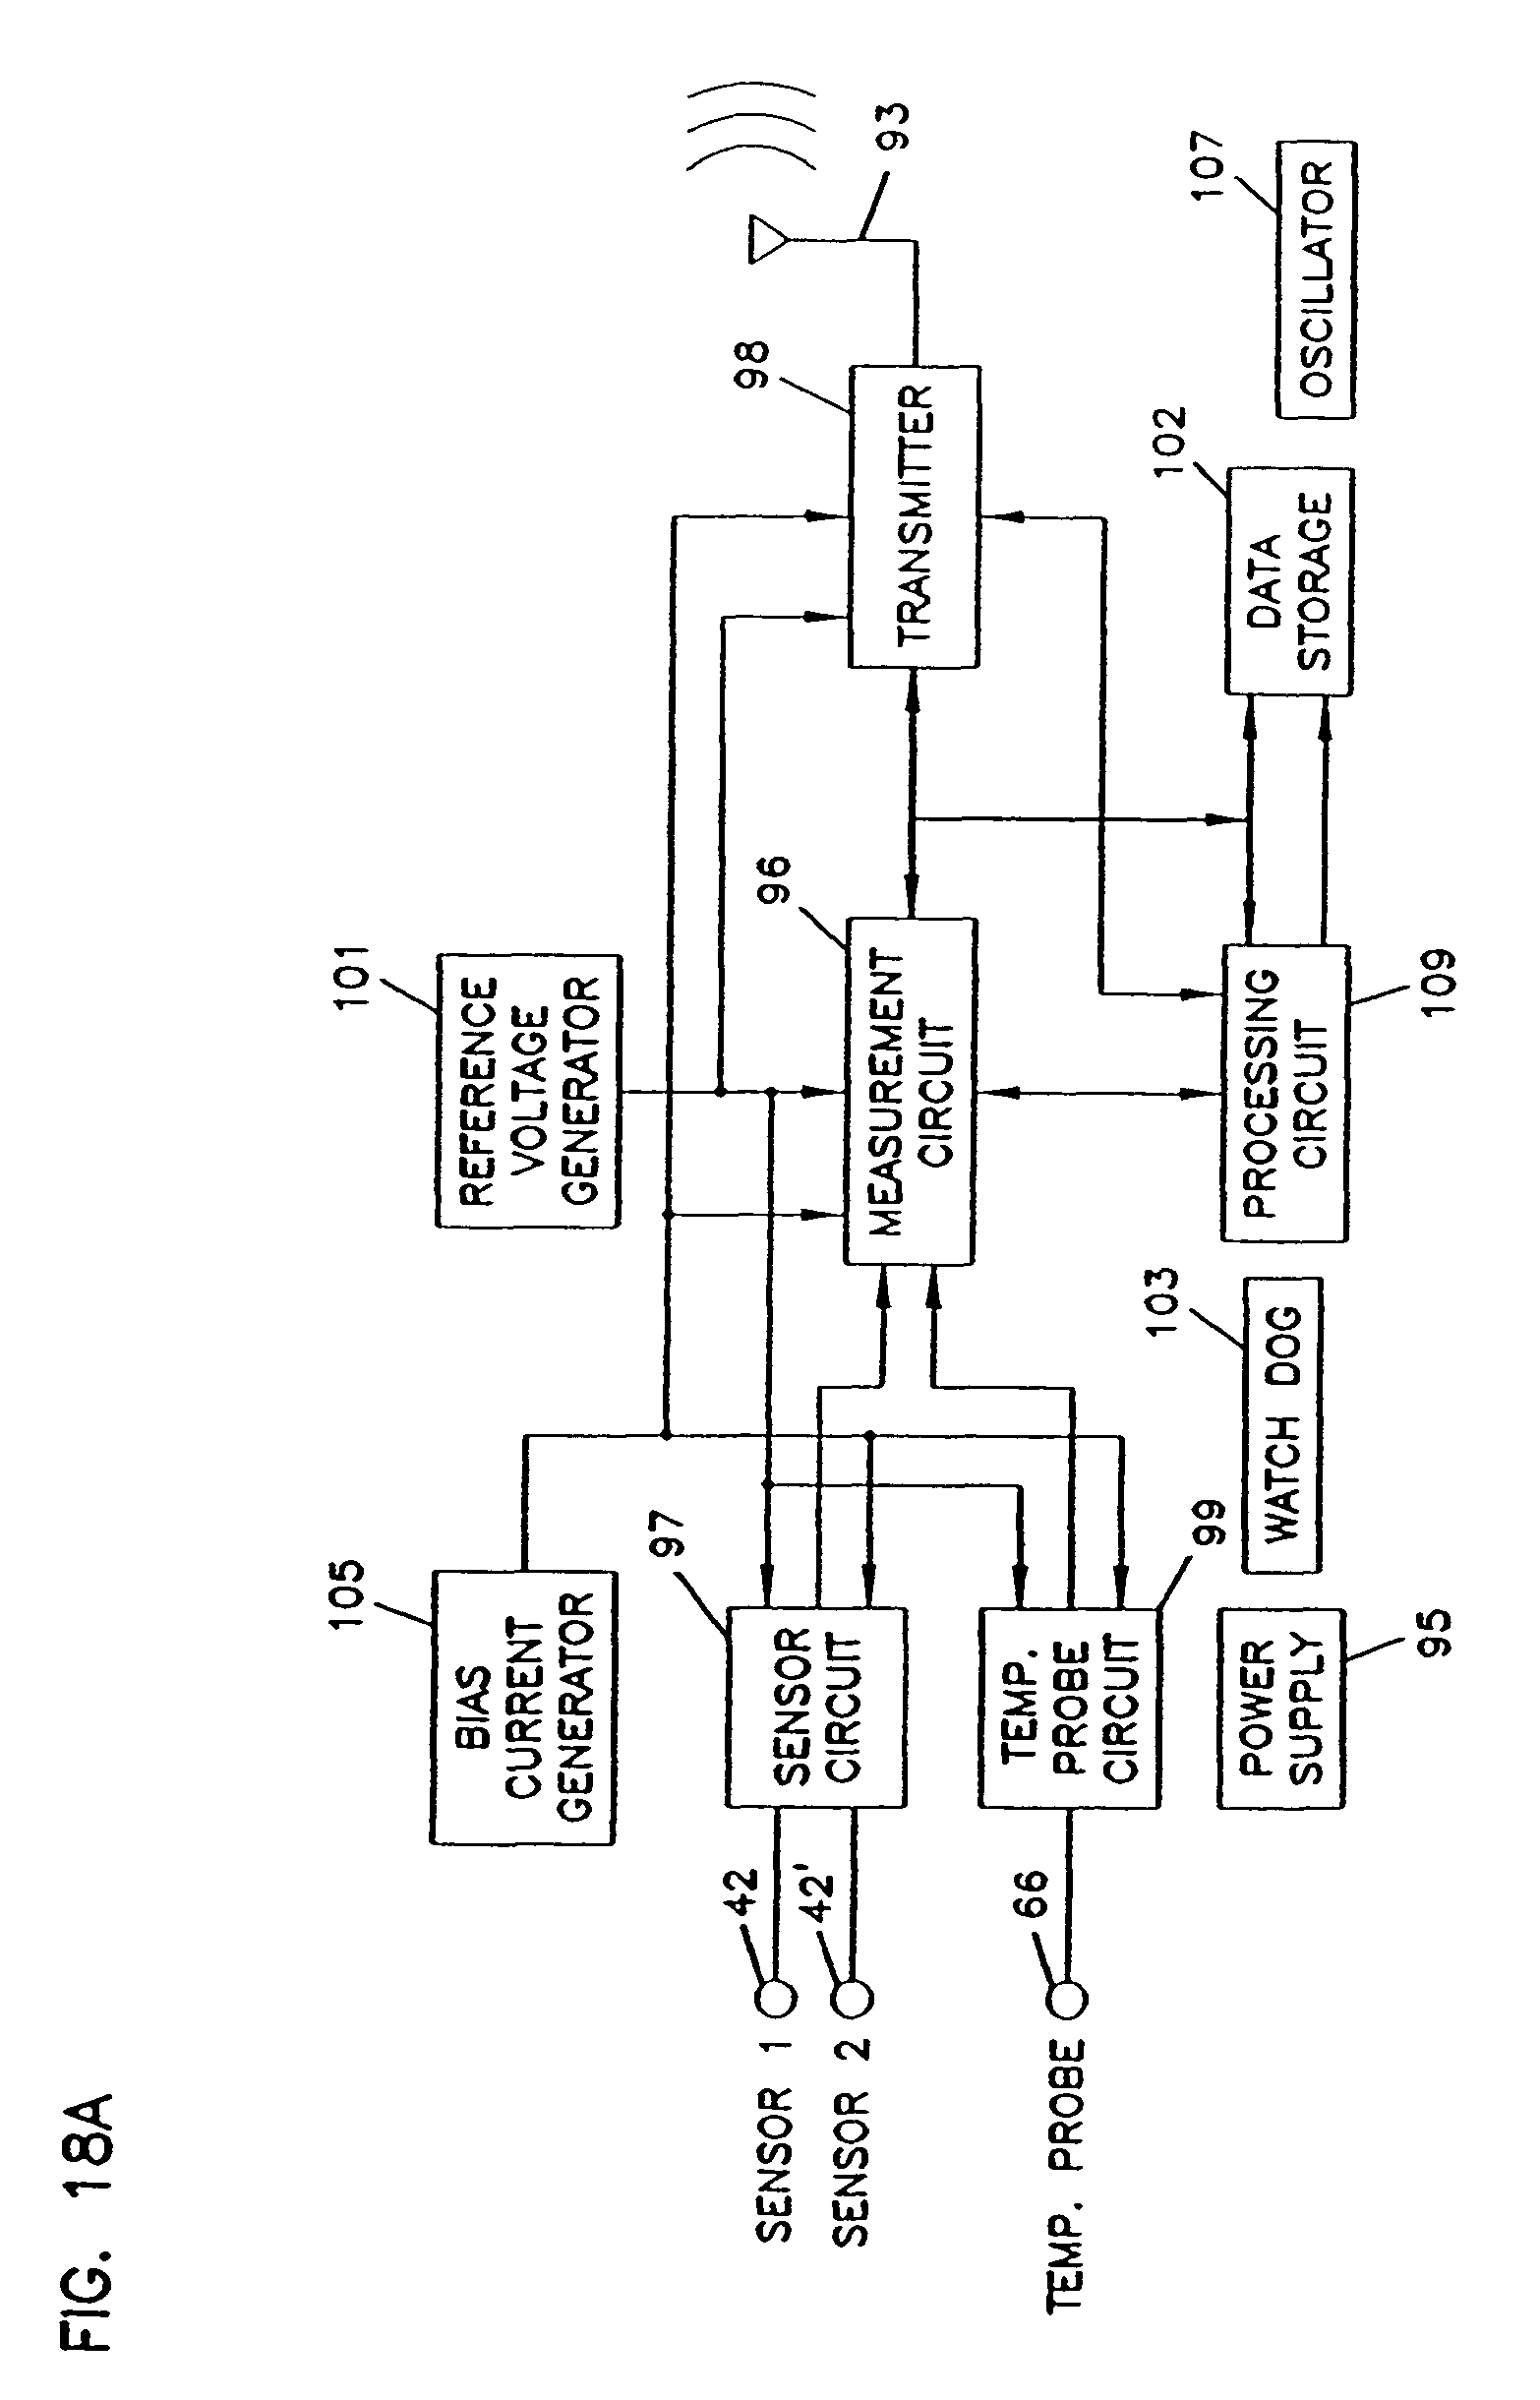 Patent Us8597189 Analyte Monitoring Device And Methods Of Use Circuits 555 Based Ultrasonic Oxygen Fish Tank Circuit Drawing